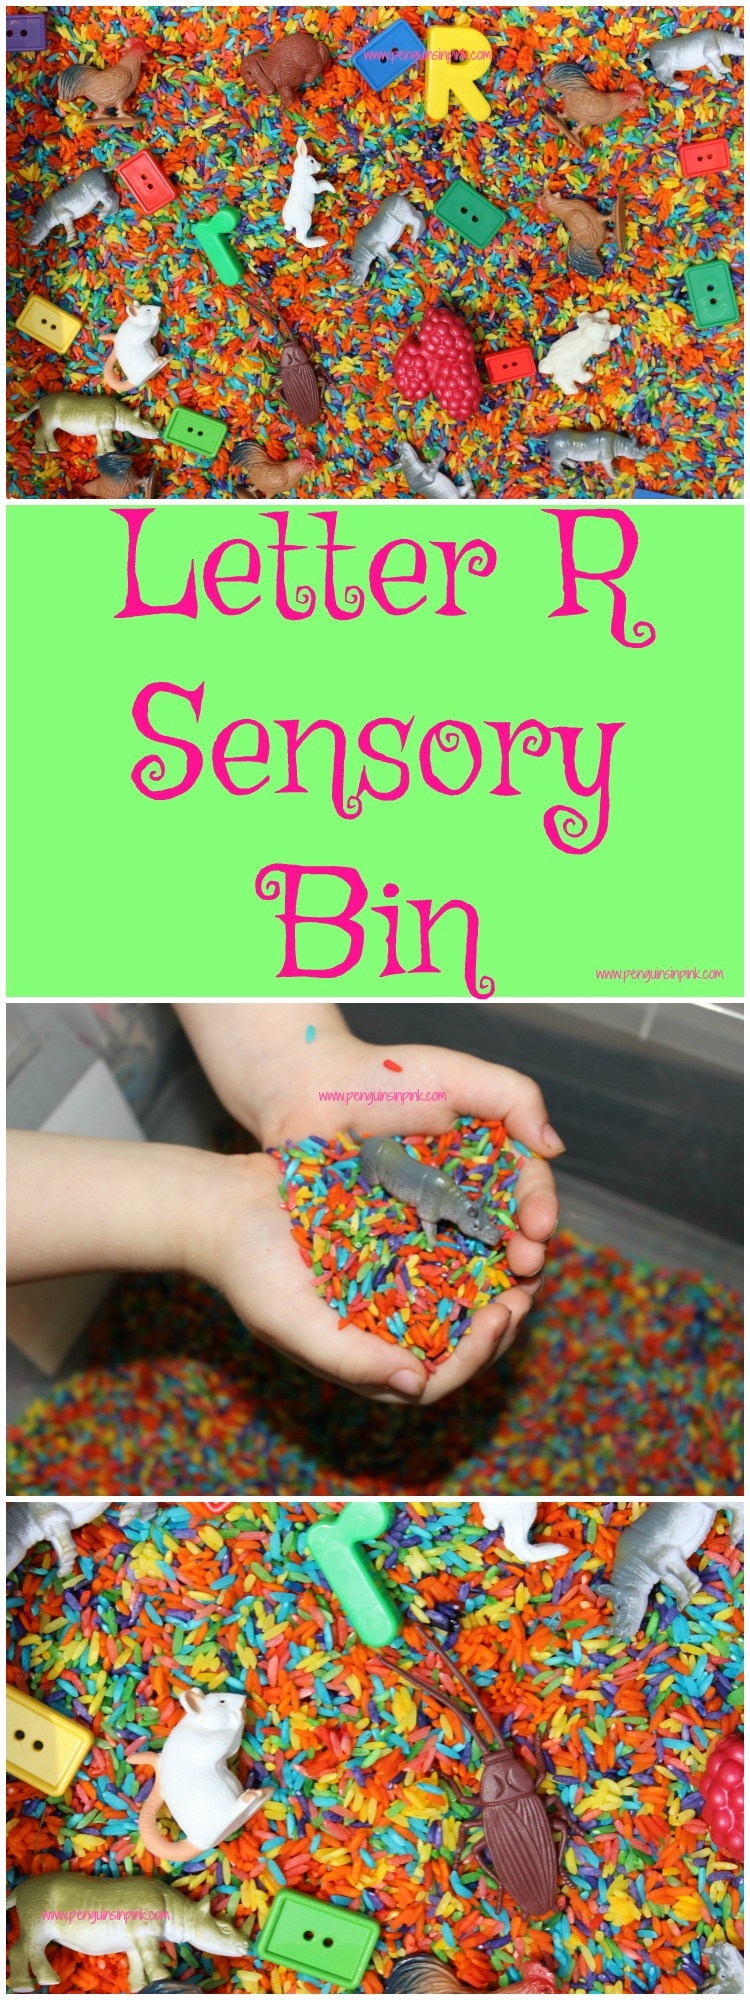 "Letter R Sensory Bin - This rainbow colored rice based sensory bin has it all rabbits, rectangles, rhinoceroses, and other items beginning with the letter ""R""."